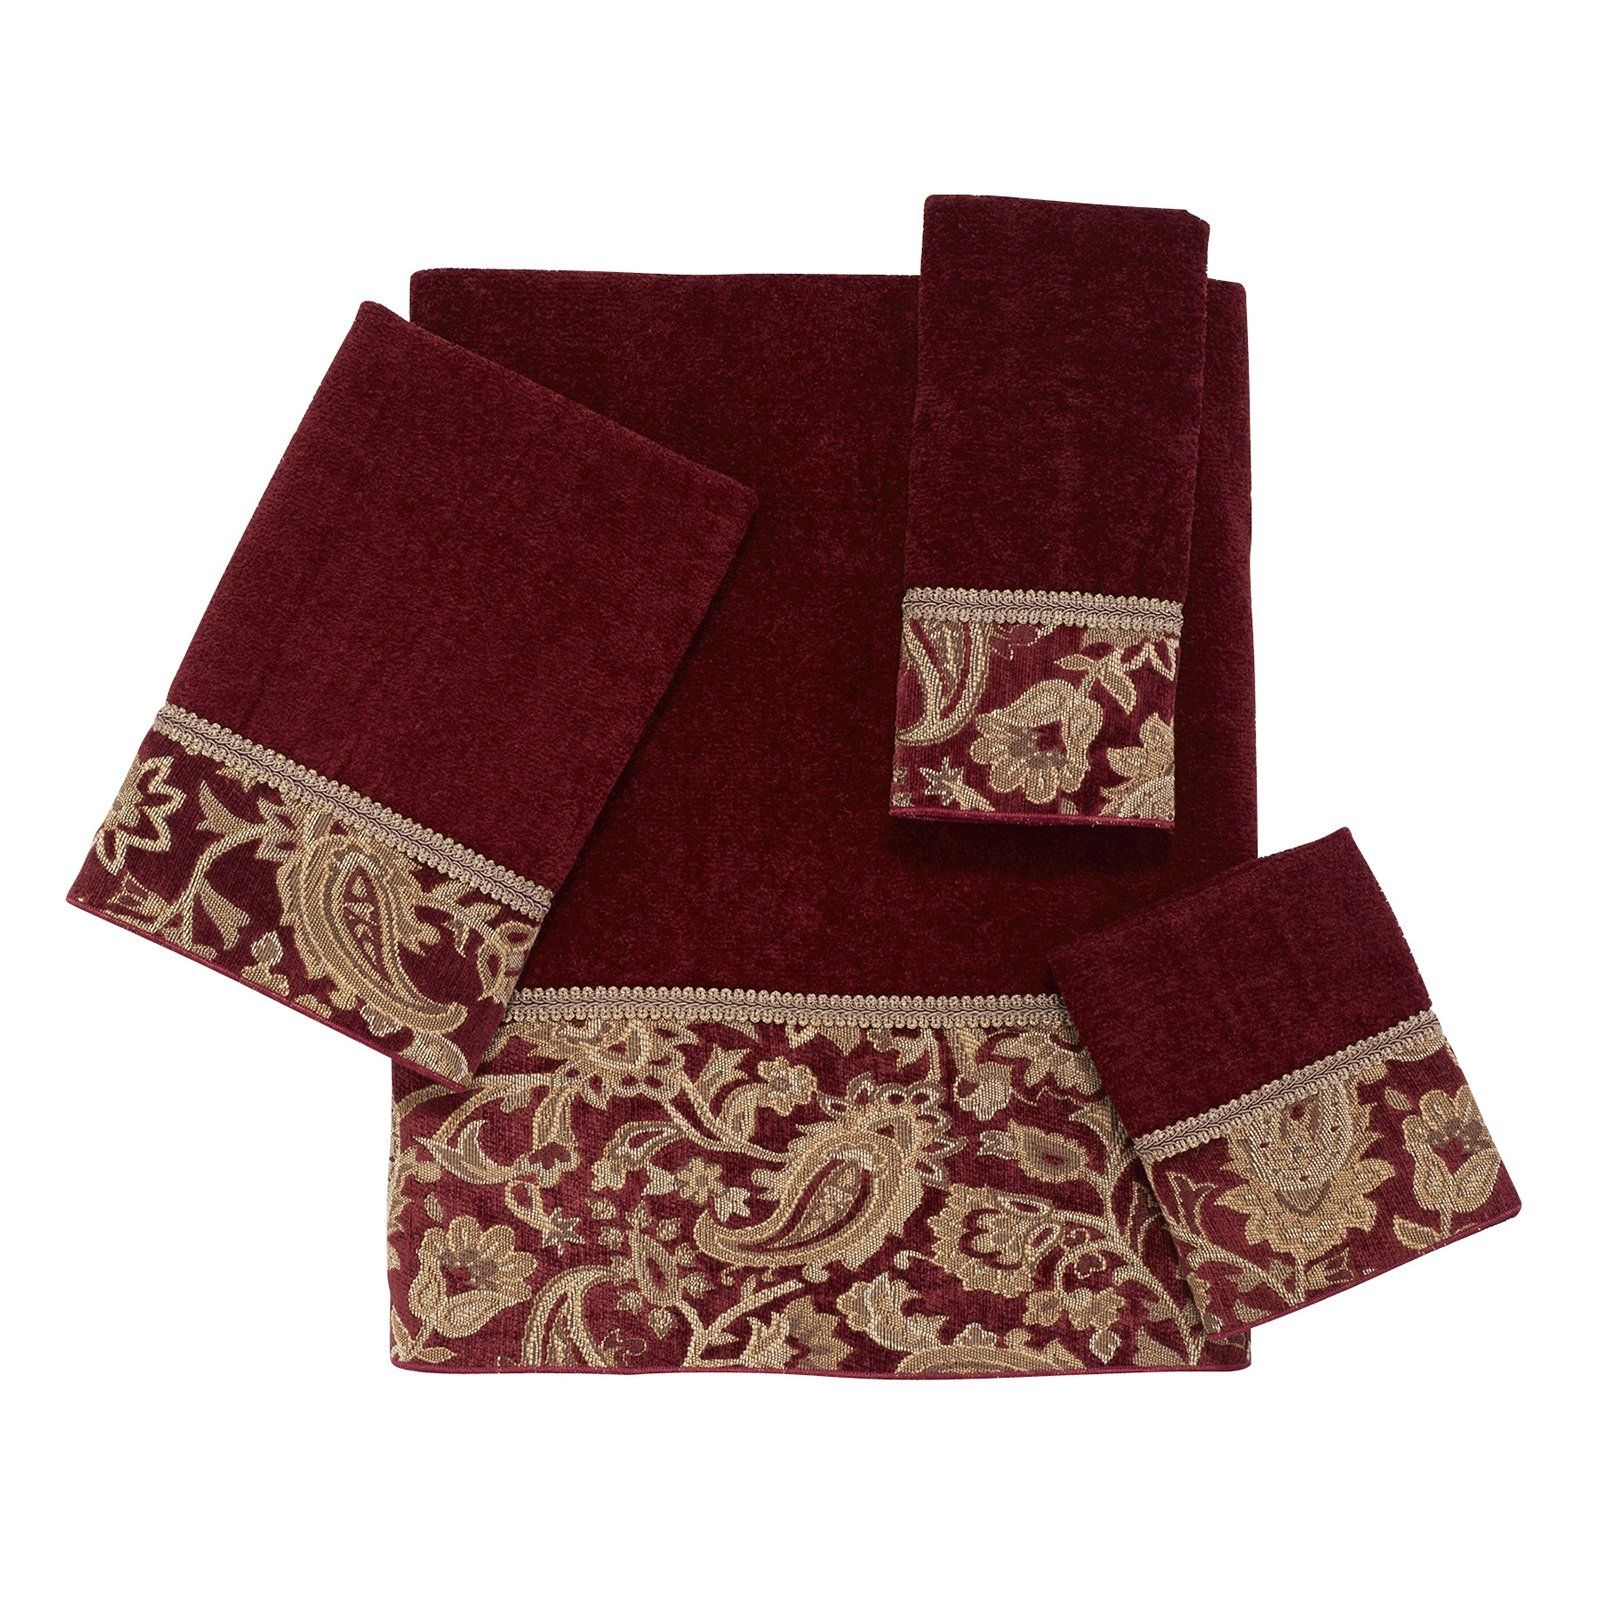 Avanti Bath Towel Sets Bathroom Ideas Pinterest - Maroon bath towels for small bathroom ideas